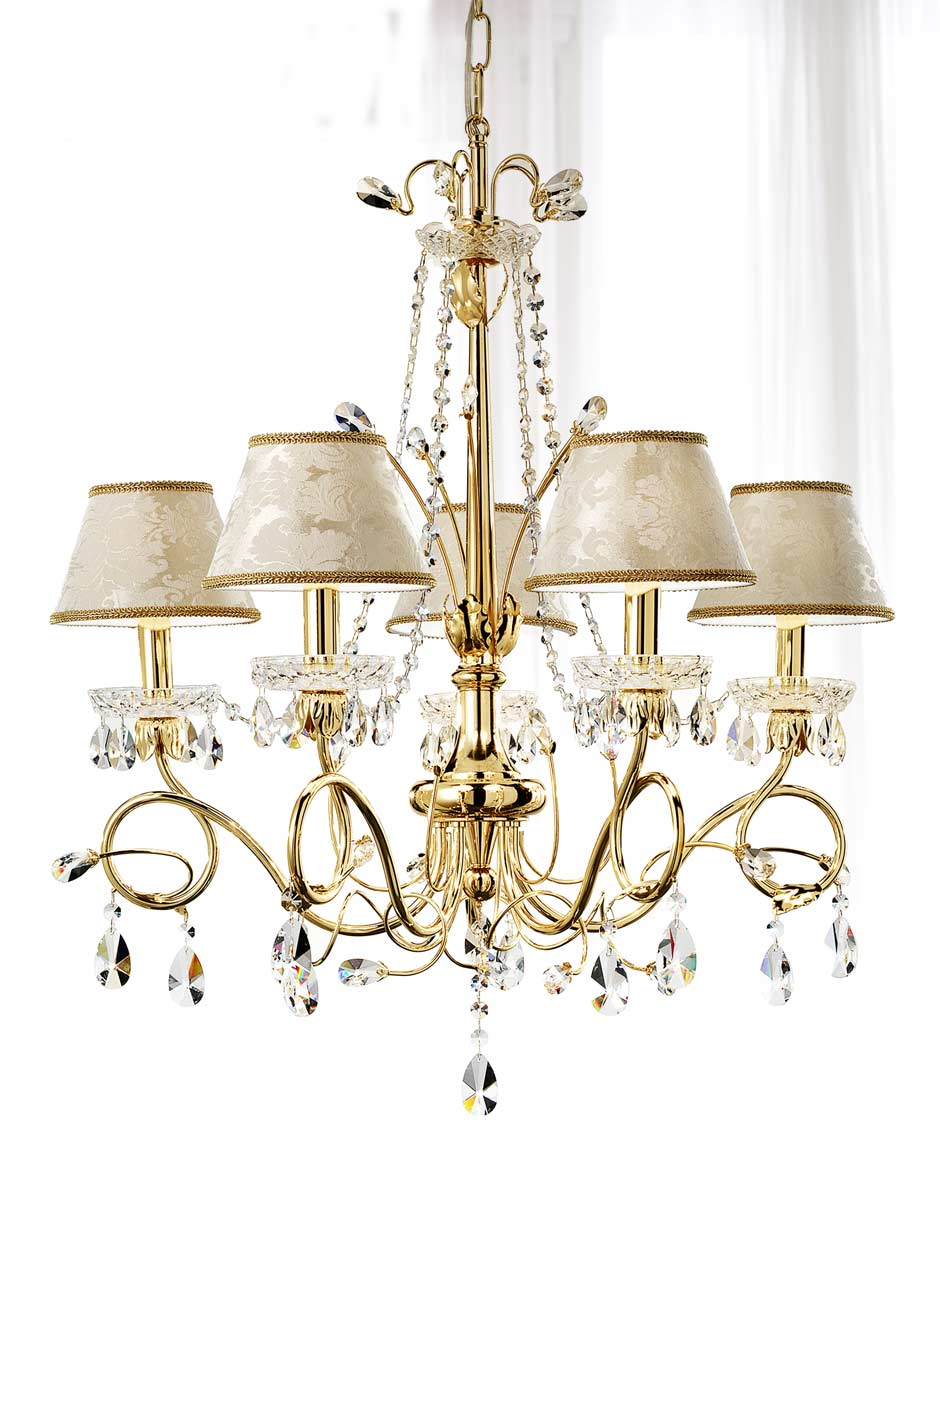 5 light gold and crystal chandelier with silk and damask satin 5 light gold and crystal chandelier with silk and damask satin masiero aloadofball Gallery